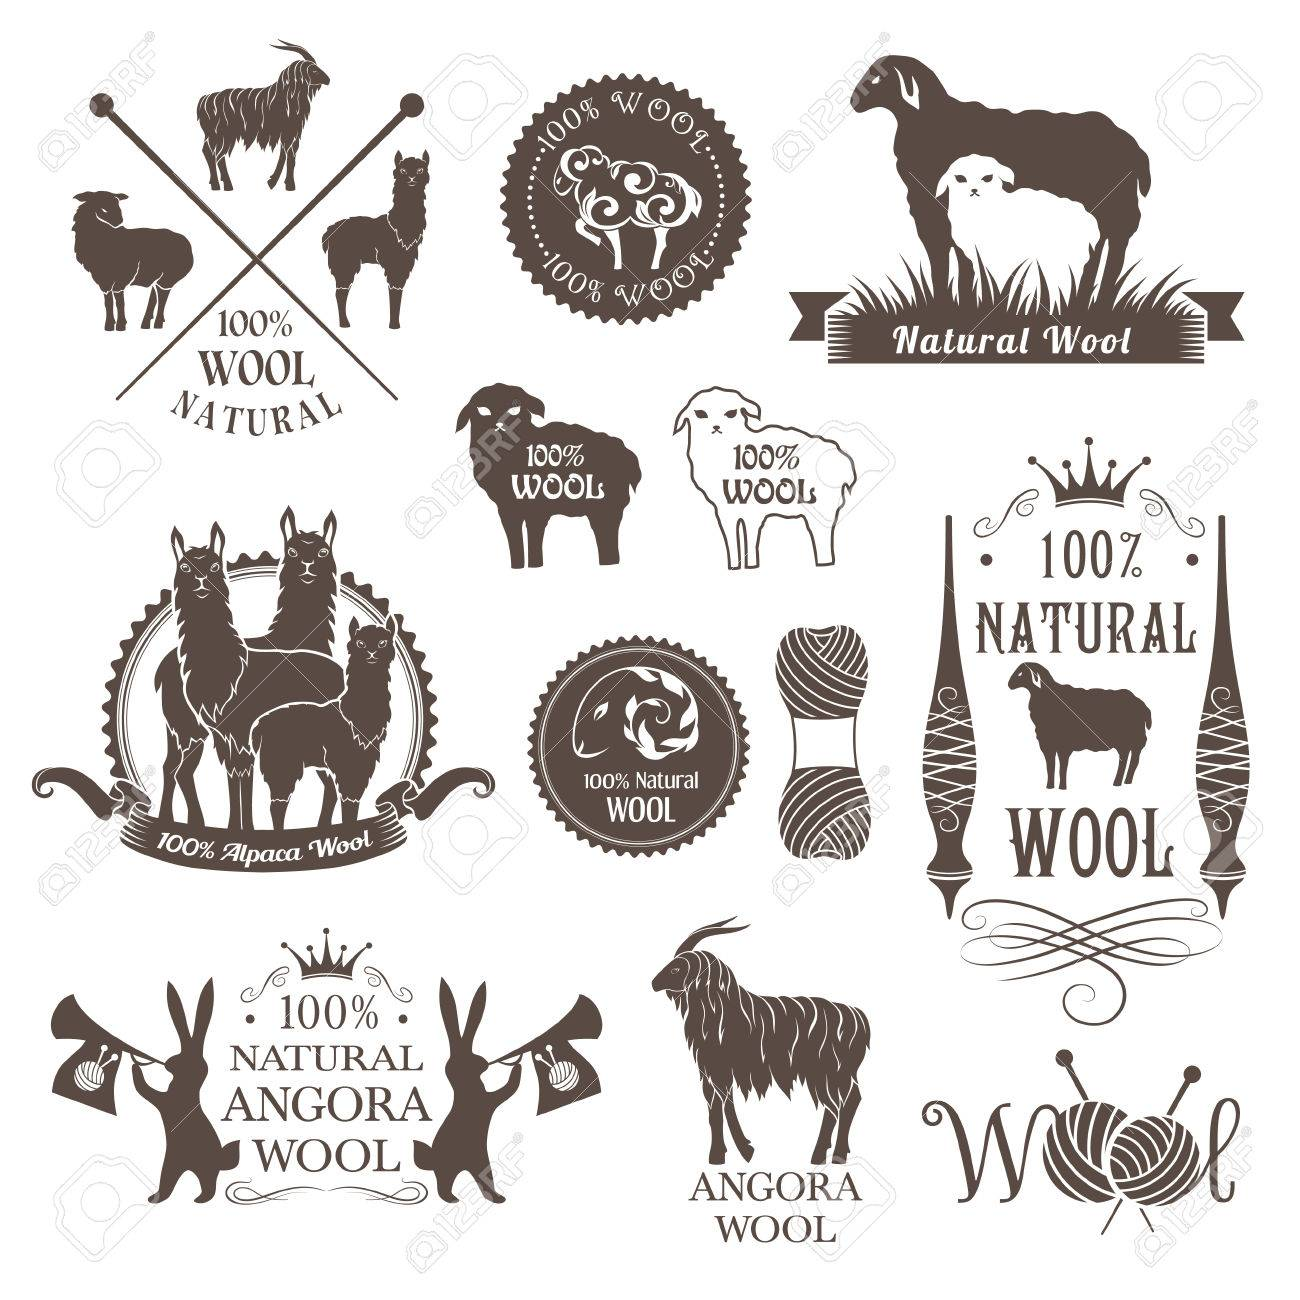 Wool labels and design elements. Logo set of sheep, alpaca, rabbit and goat wool. Signs and emblems for natural wool products. - 57484563